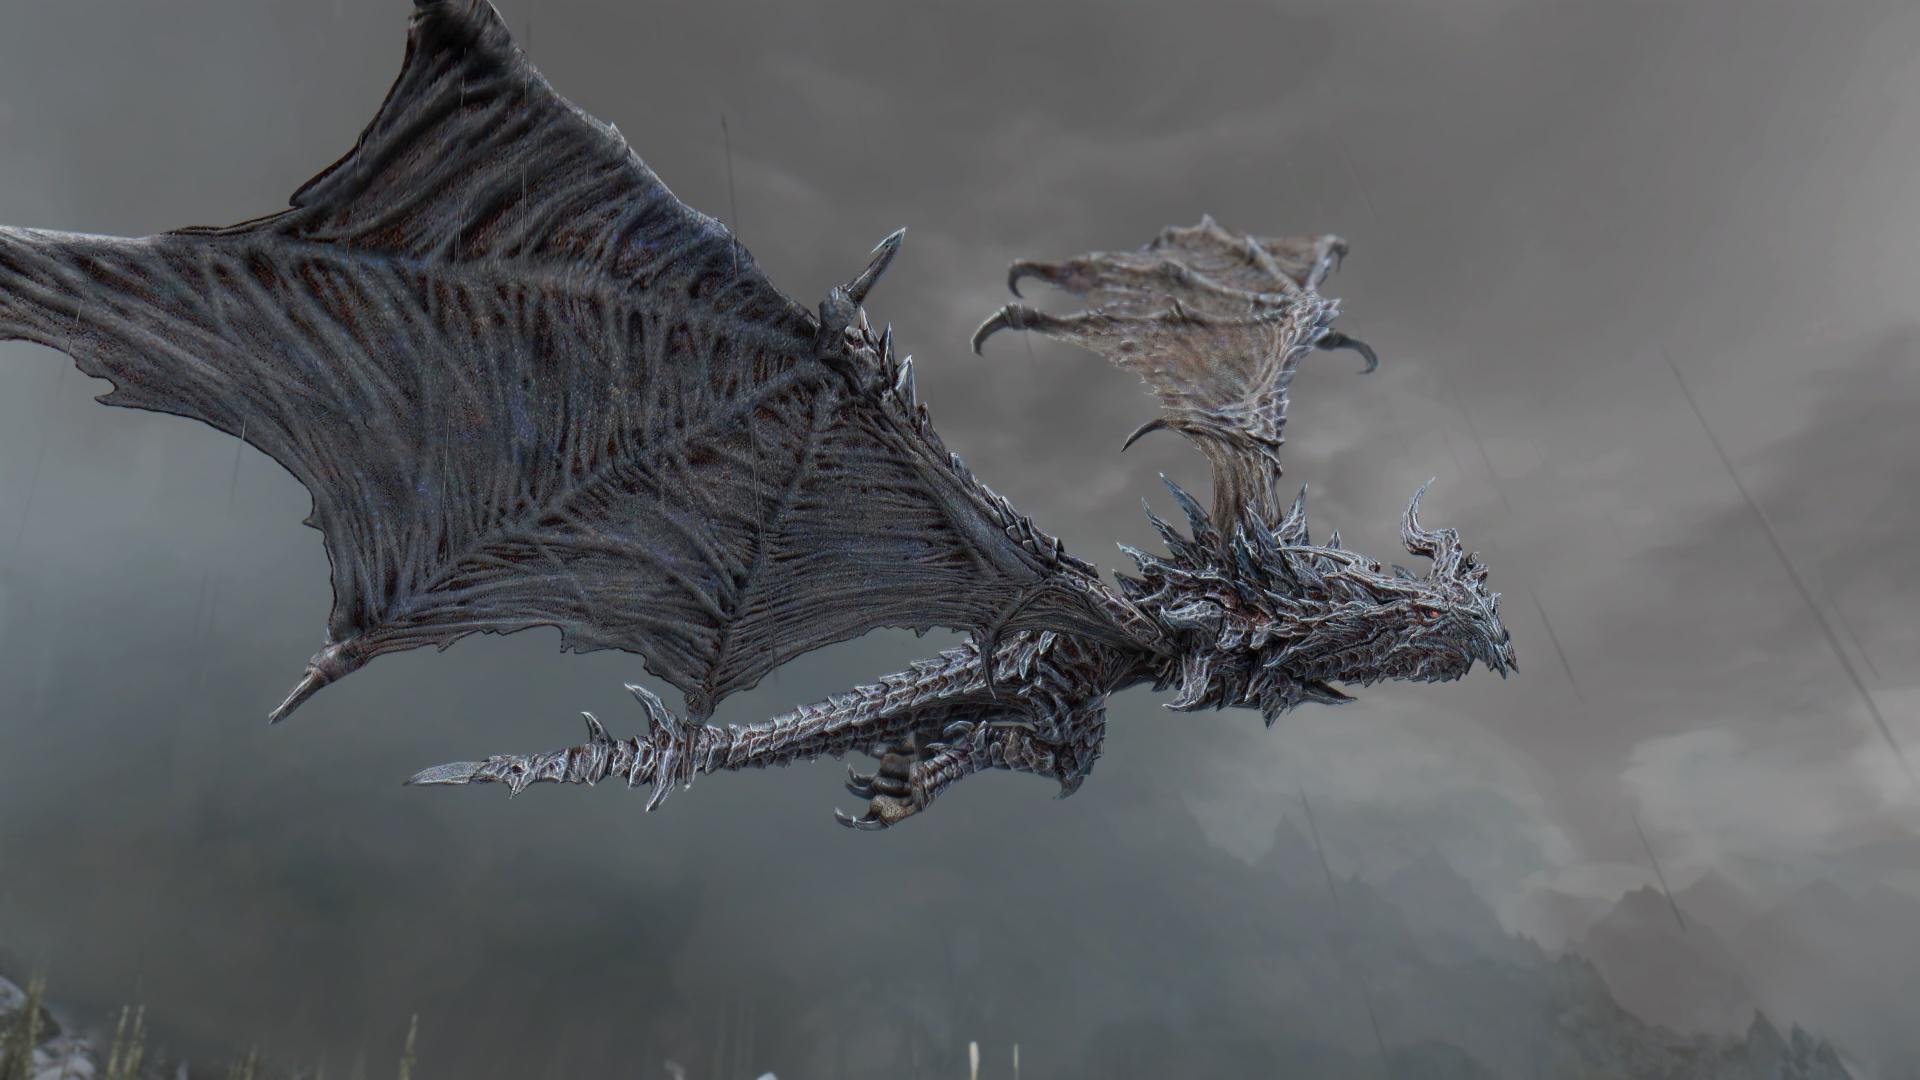 February Dragons featuring Alduin